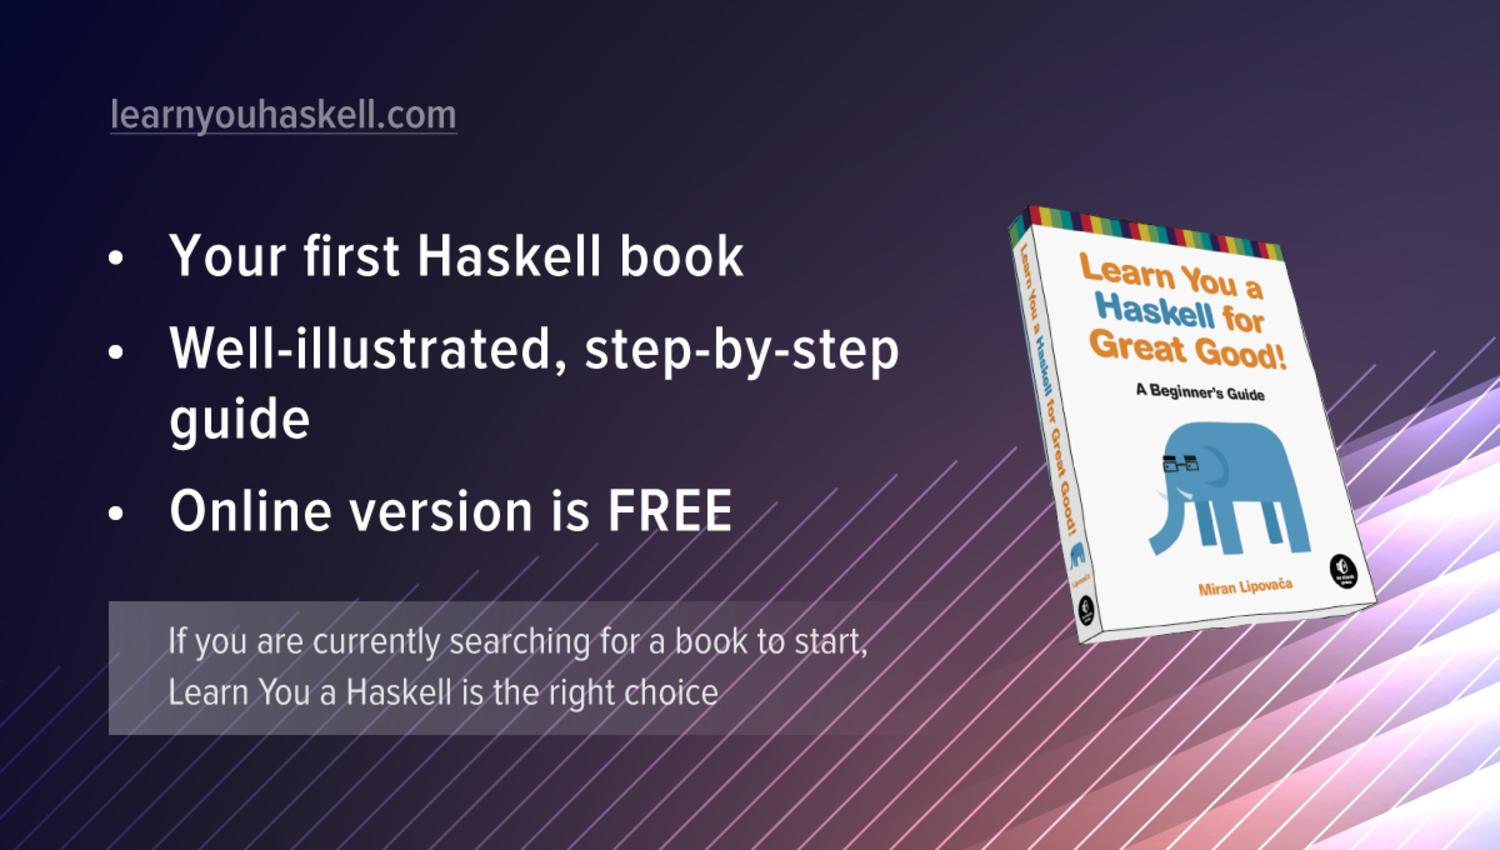 Learn You a Haskell